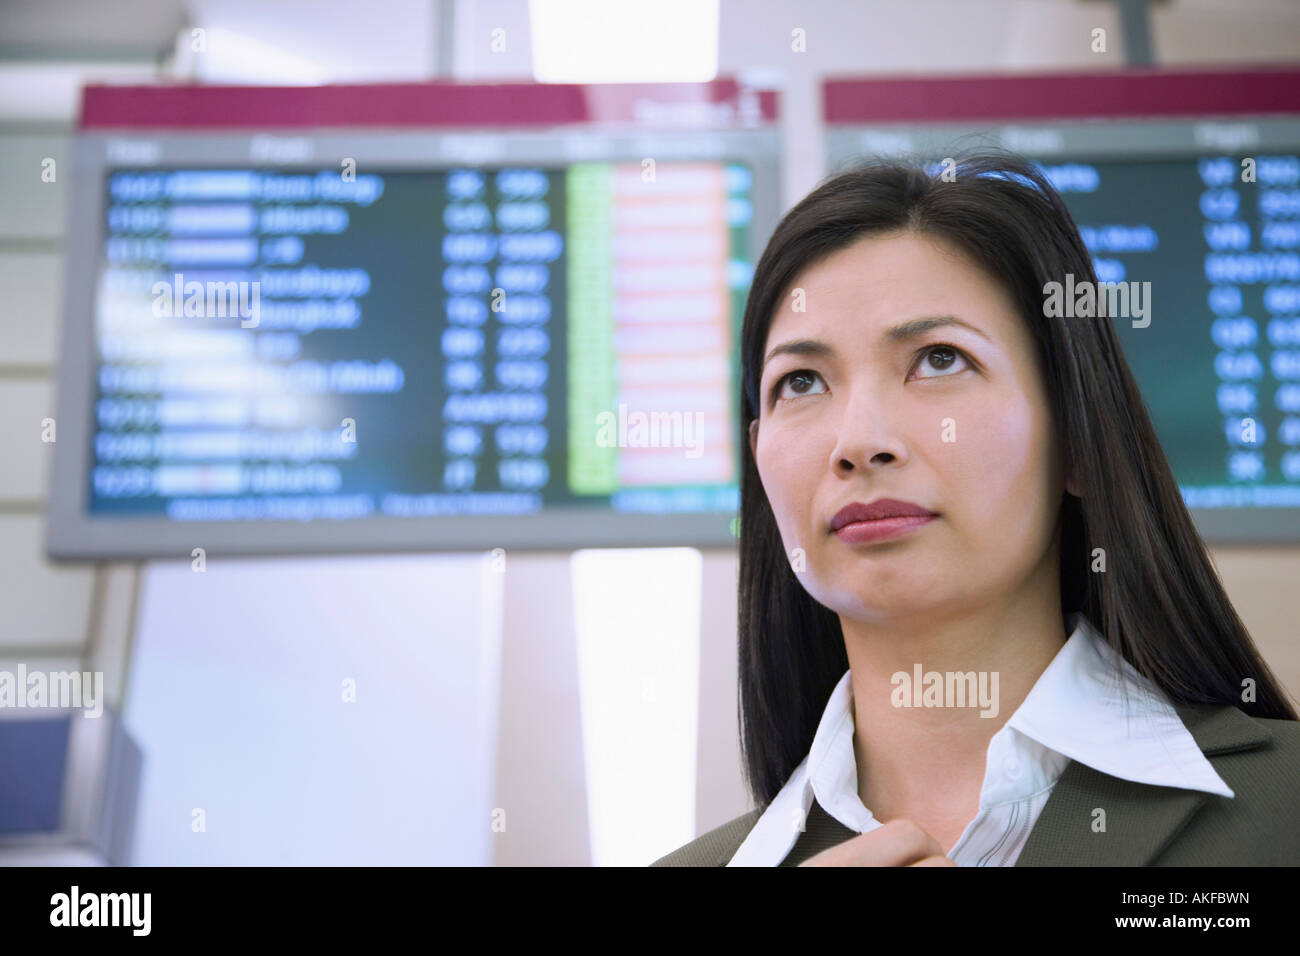 Low angle view of a businesswoman in front of an arrival departure board - Stock Image